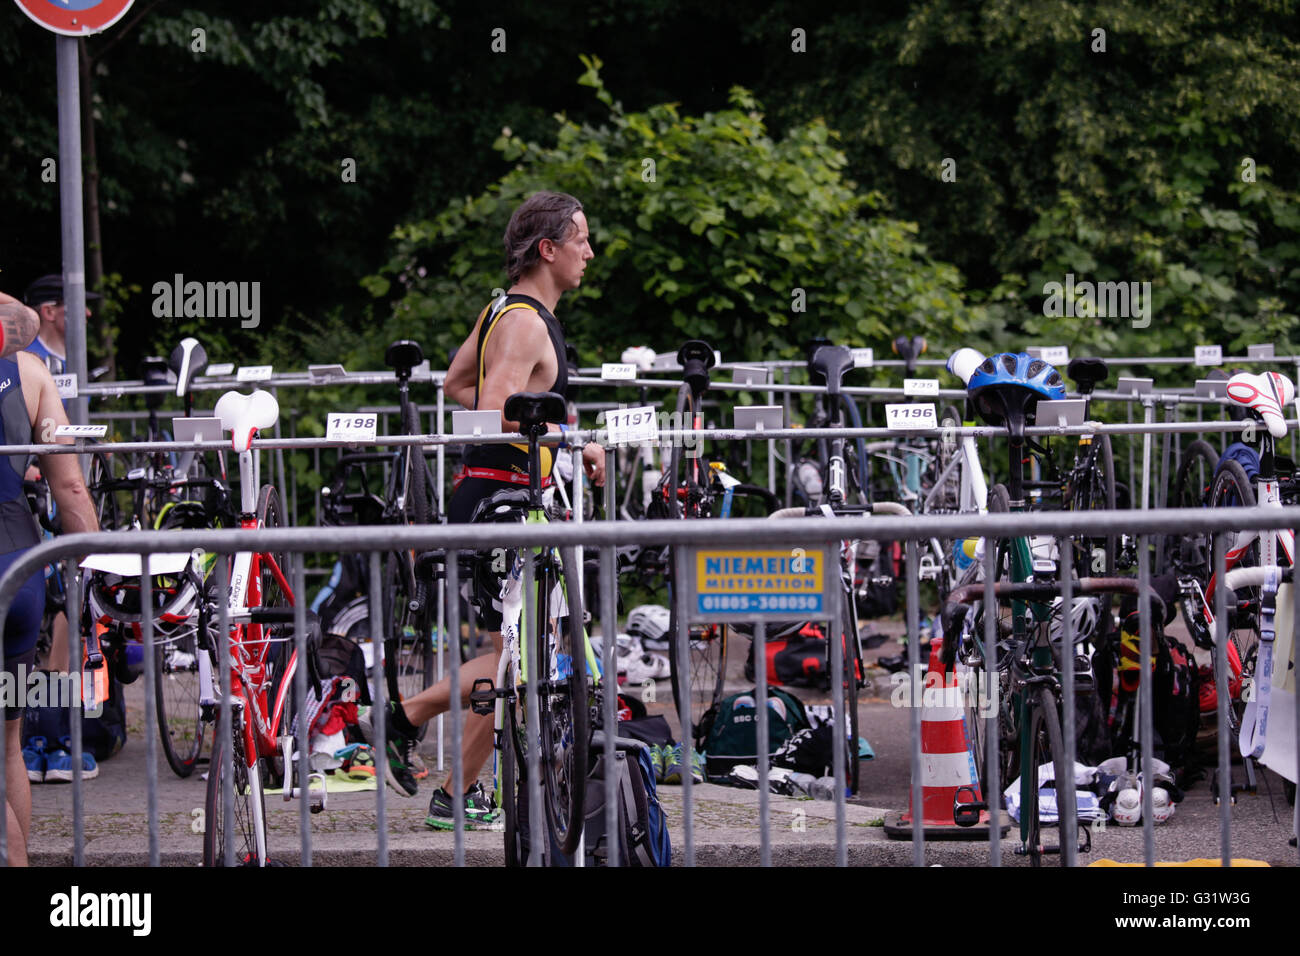 10 th edition of the Berlin Triathlon, which start with the disciplin of  swimming around the  Isle of Youth in - Stock Image